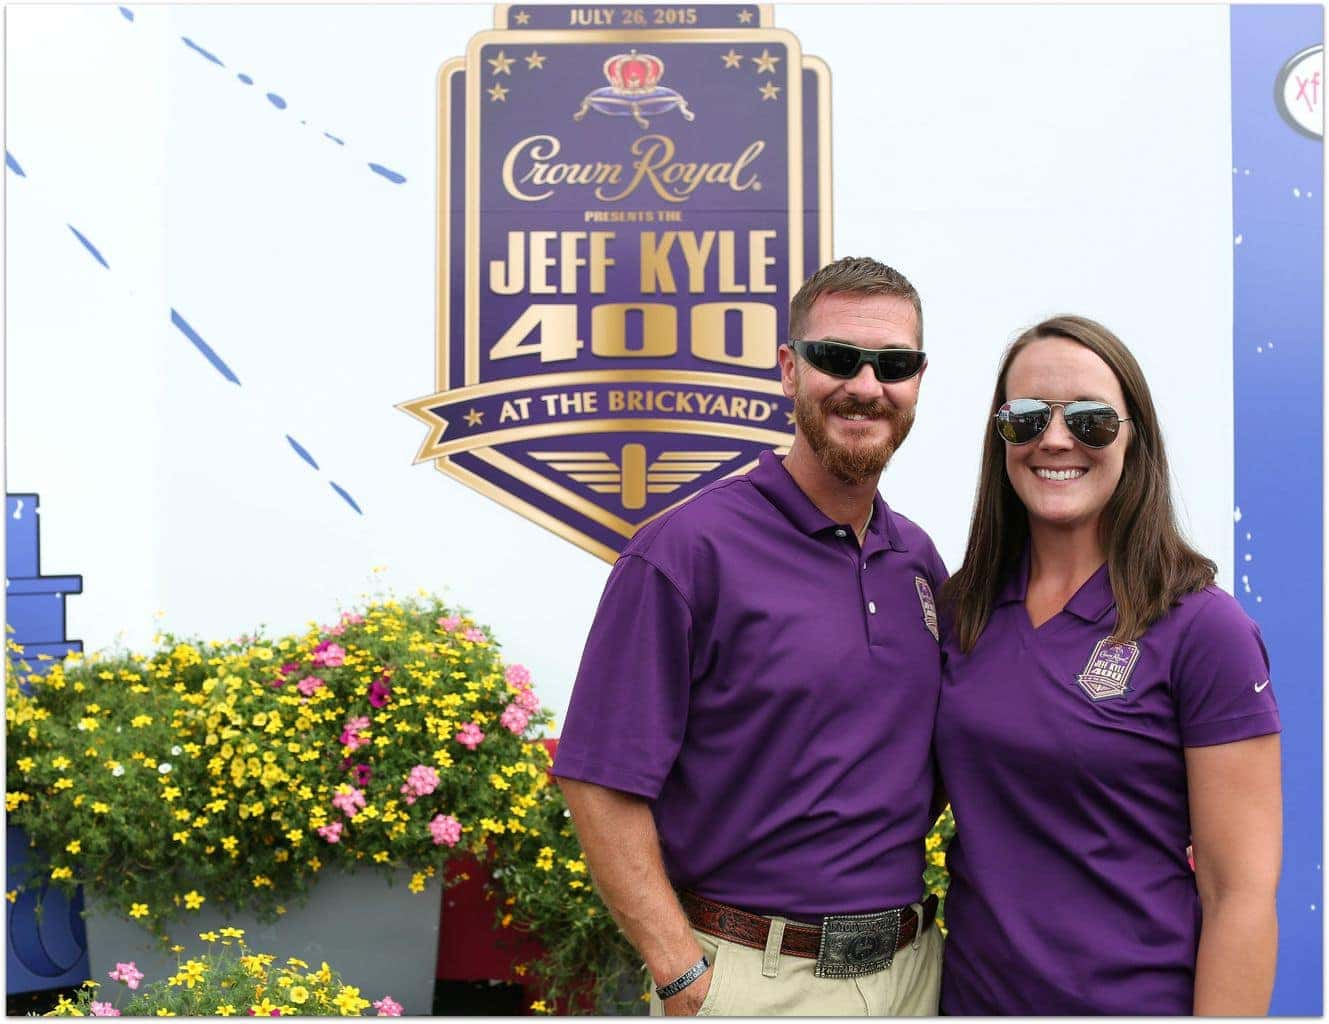 Crown Royal Presents The Jeff Kyle 400 At The Brickyar at Indianapolis Motorspeedway on July 26, 2015 in Indianapolis, Indiana.